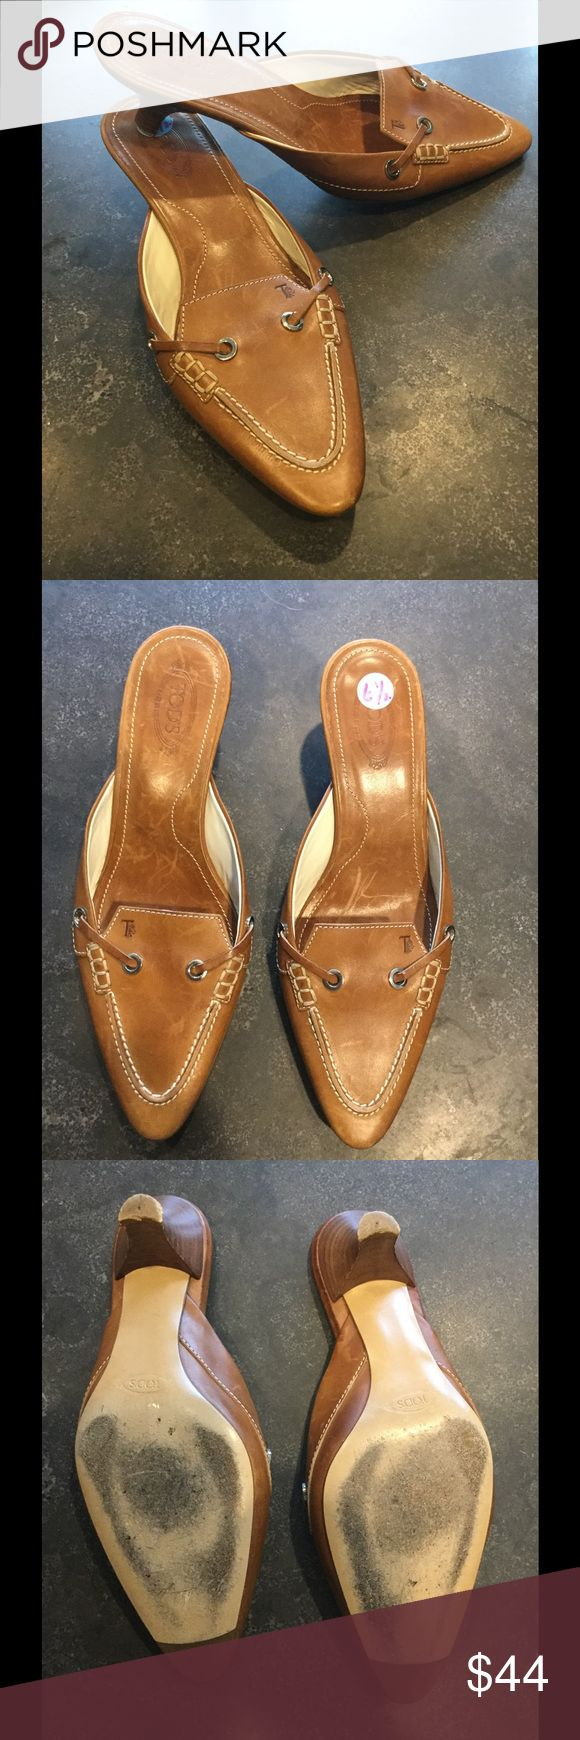 "Tod's Italian leather mule clogs low heels slip on Good used condition w/ some scratches to leather and black mark to one heel. Kitten Heel measures 1"". Beautiful camel brown color. White topstitch detail. Pointed toe. Tod's Shoes Mules & Clogs"